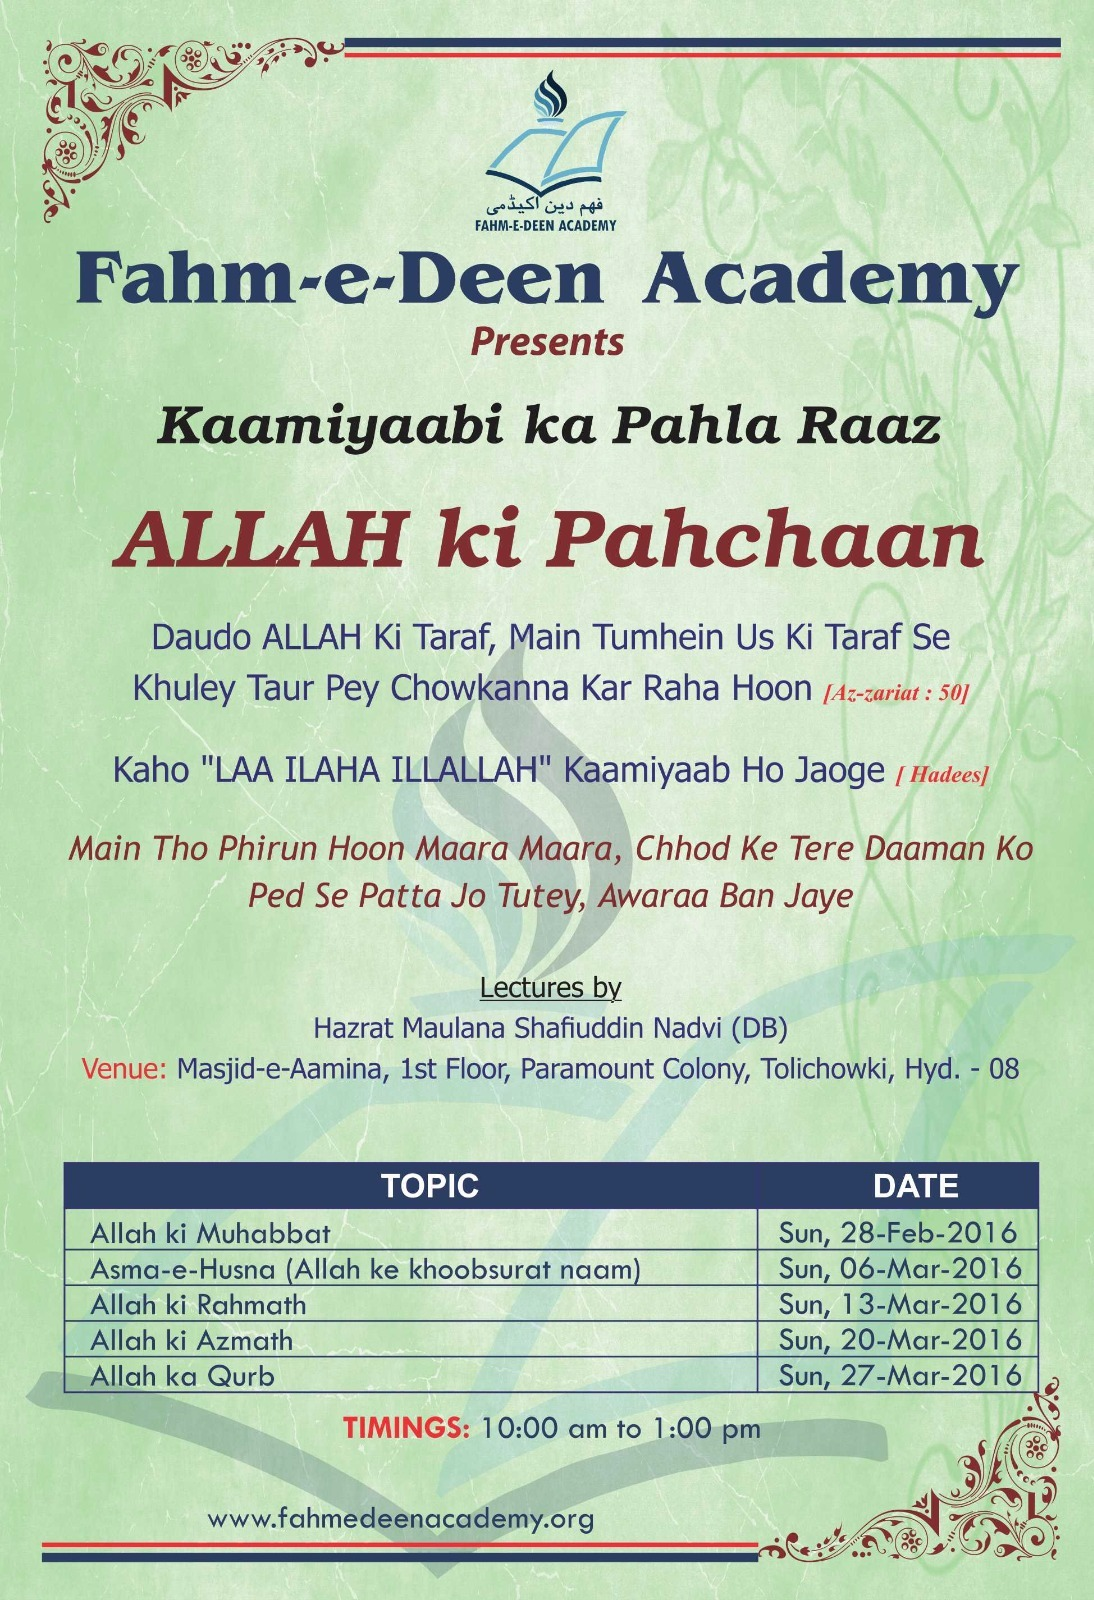 SCHEDULE FOR NEXT FIVE LECTURE ALLAH الله KI PAHCHAAN AT www.fahmedeenacademy.org AT AMINA MASJID EVERY SUNDAY